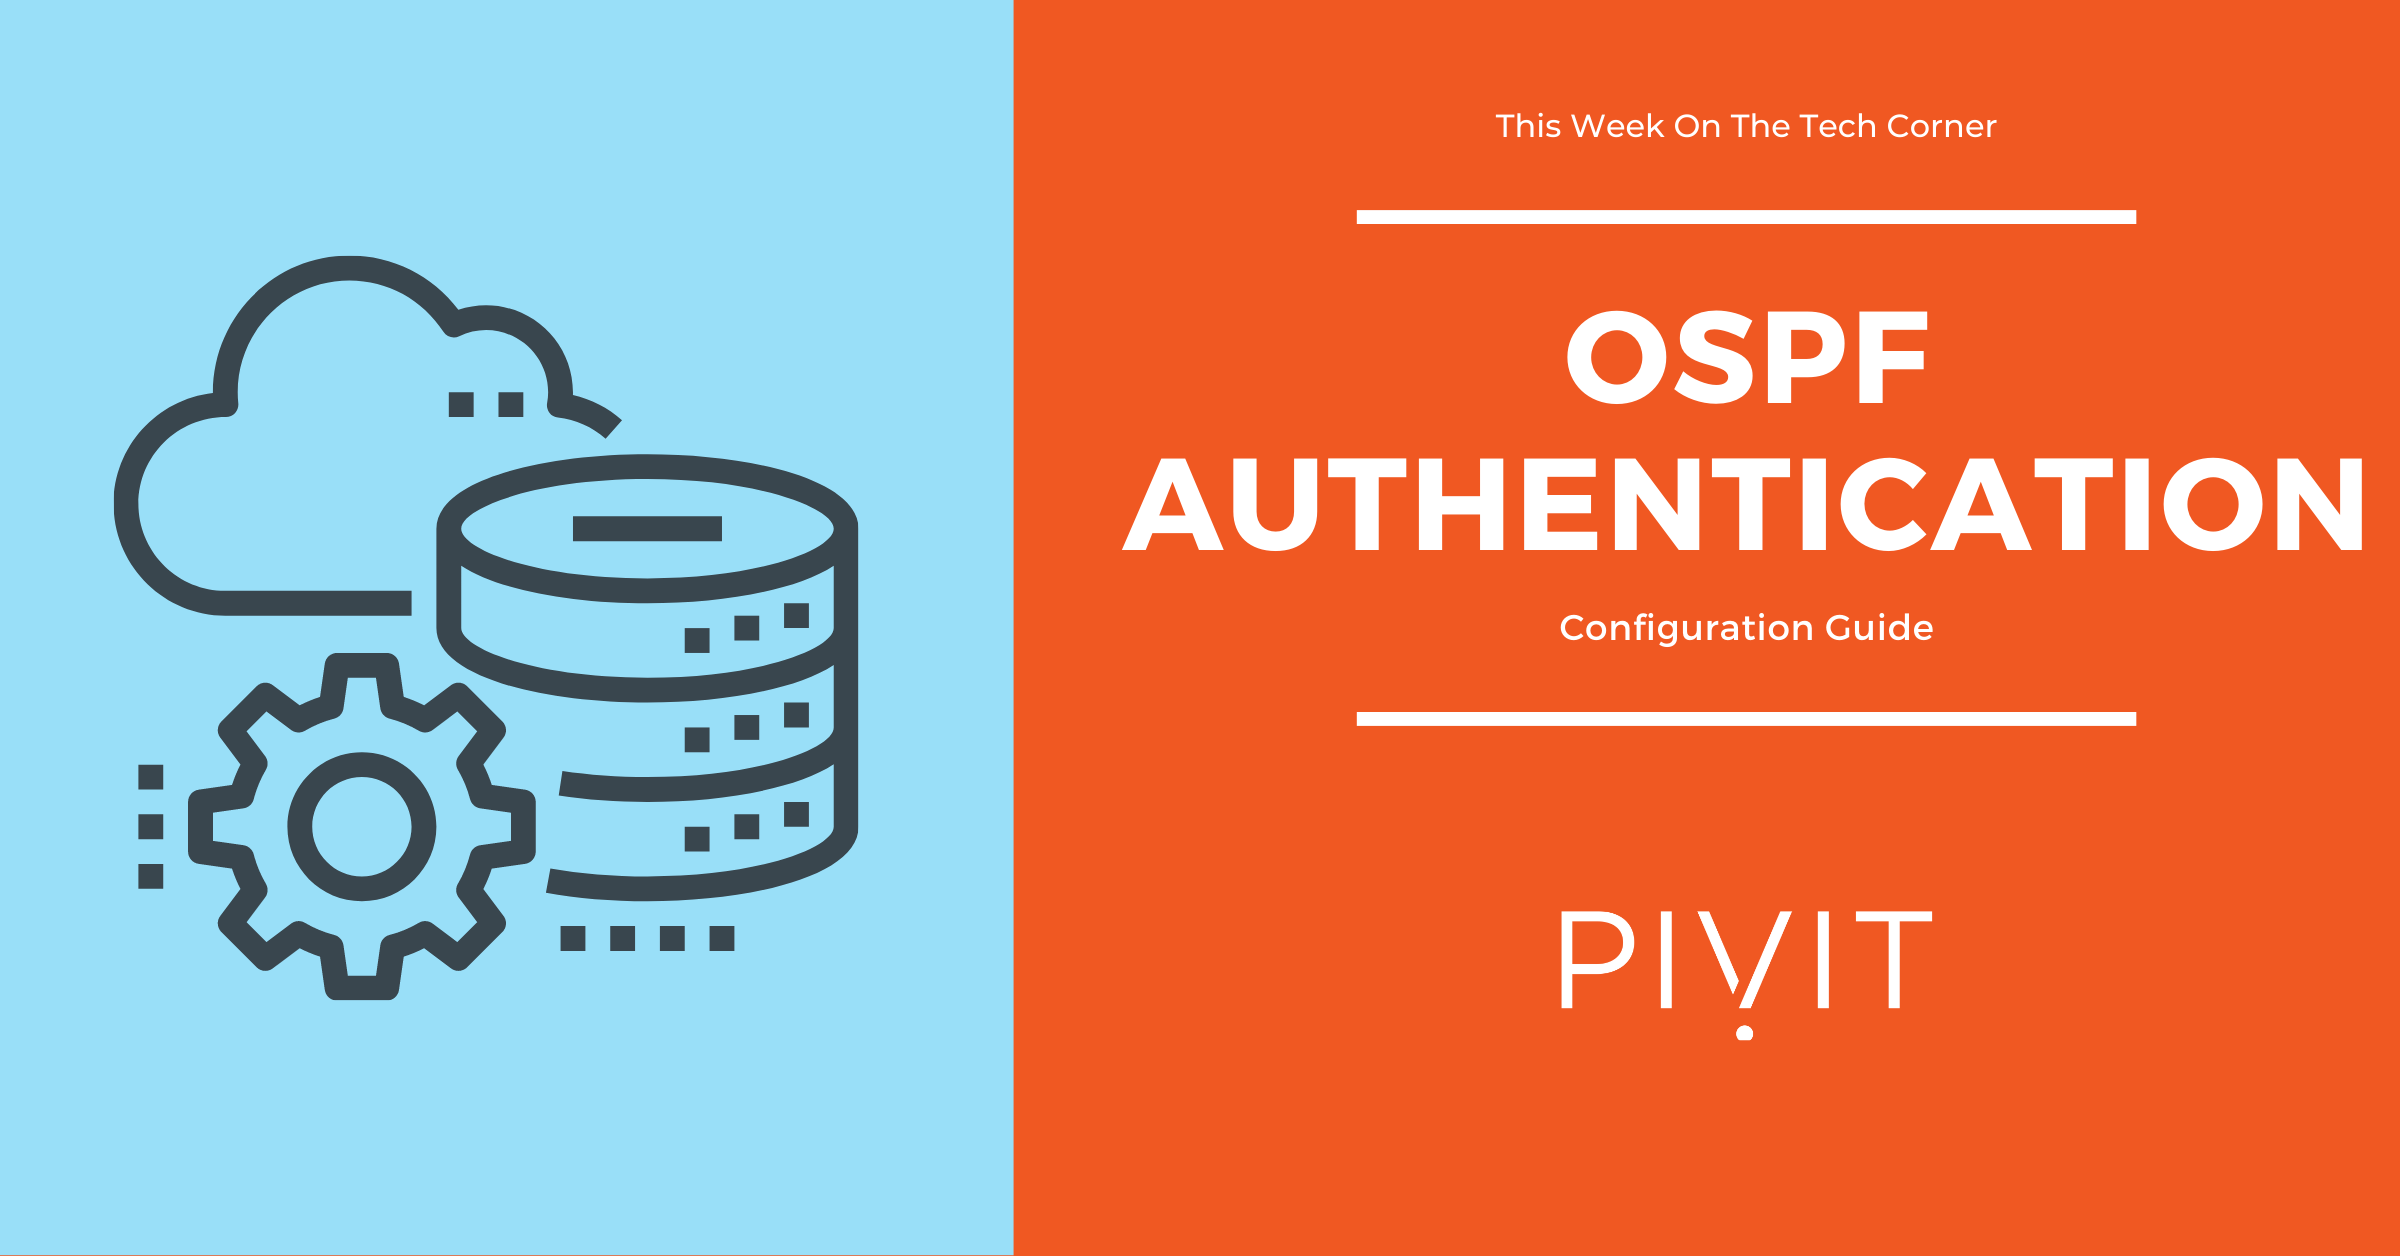 An Engineer's Guide to Configuring OSPF Authentication